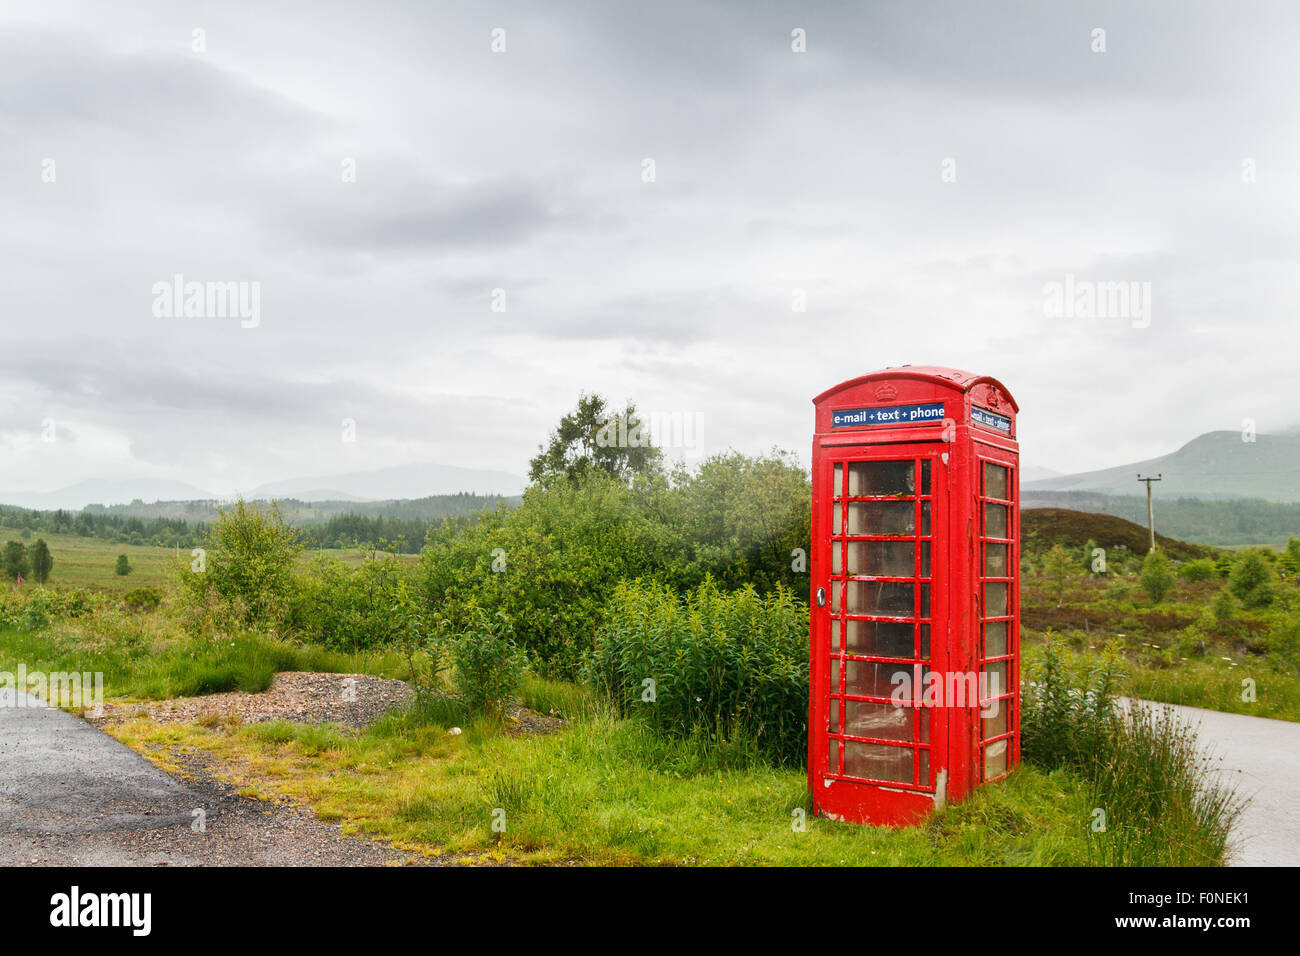 Lonely telephone box in Scotish Highland scenery - Stock Image